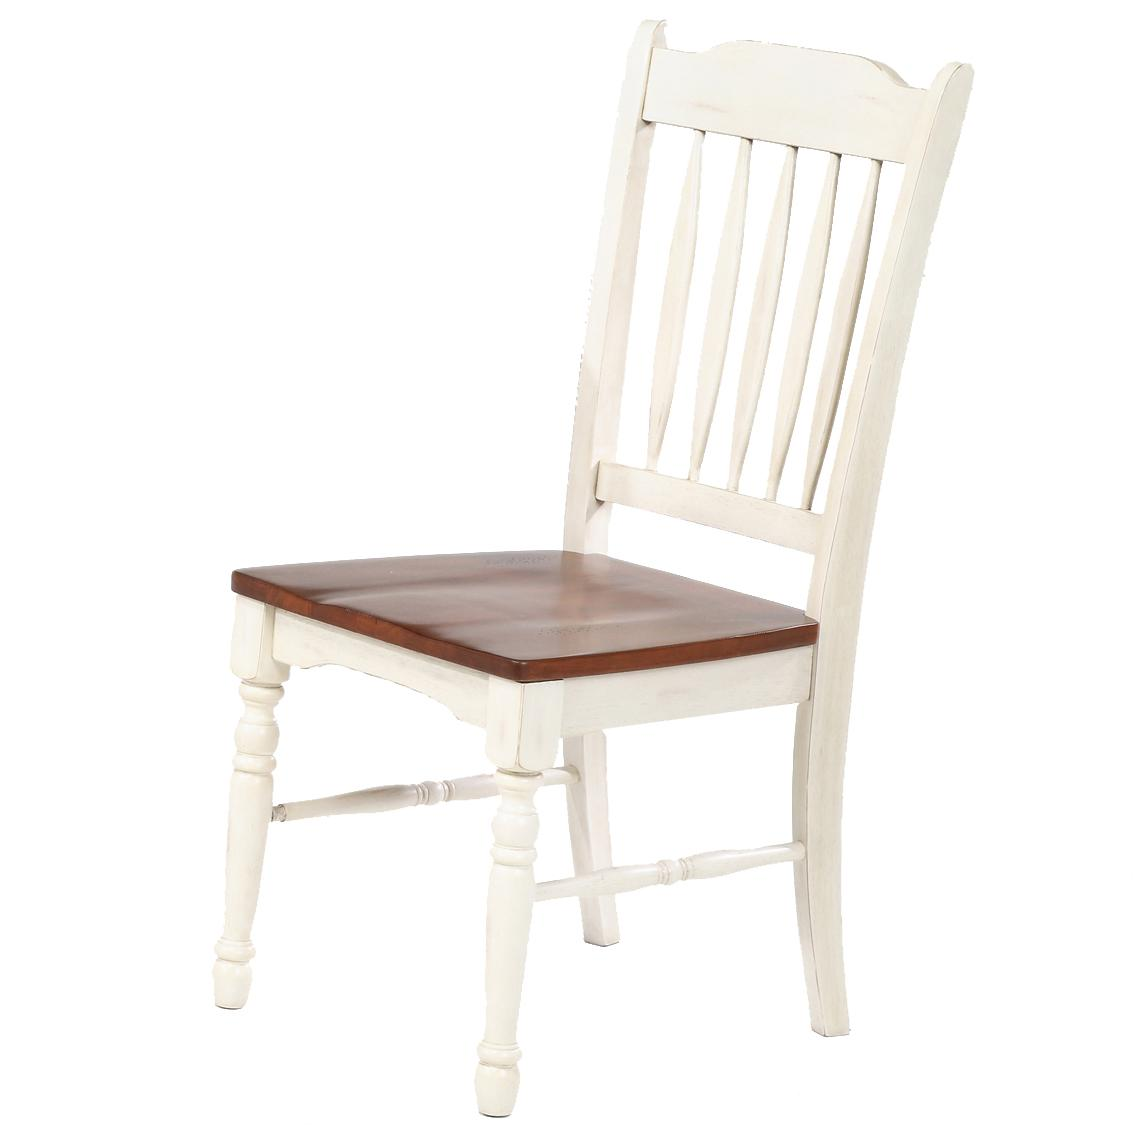 British Isles Slatback Side Chair by A-A at Walker's Furniture